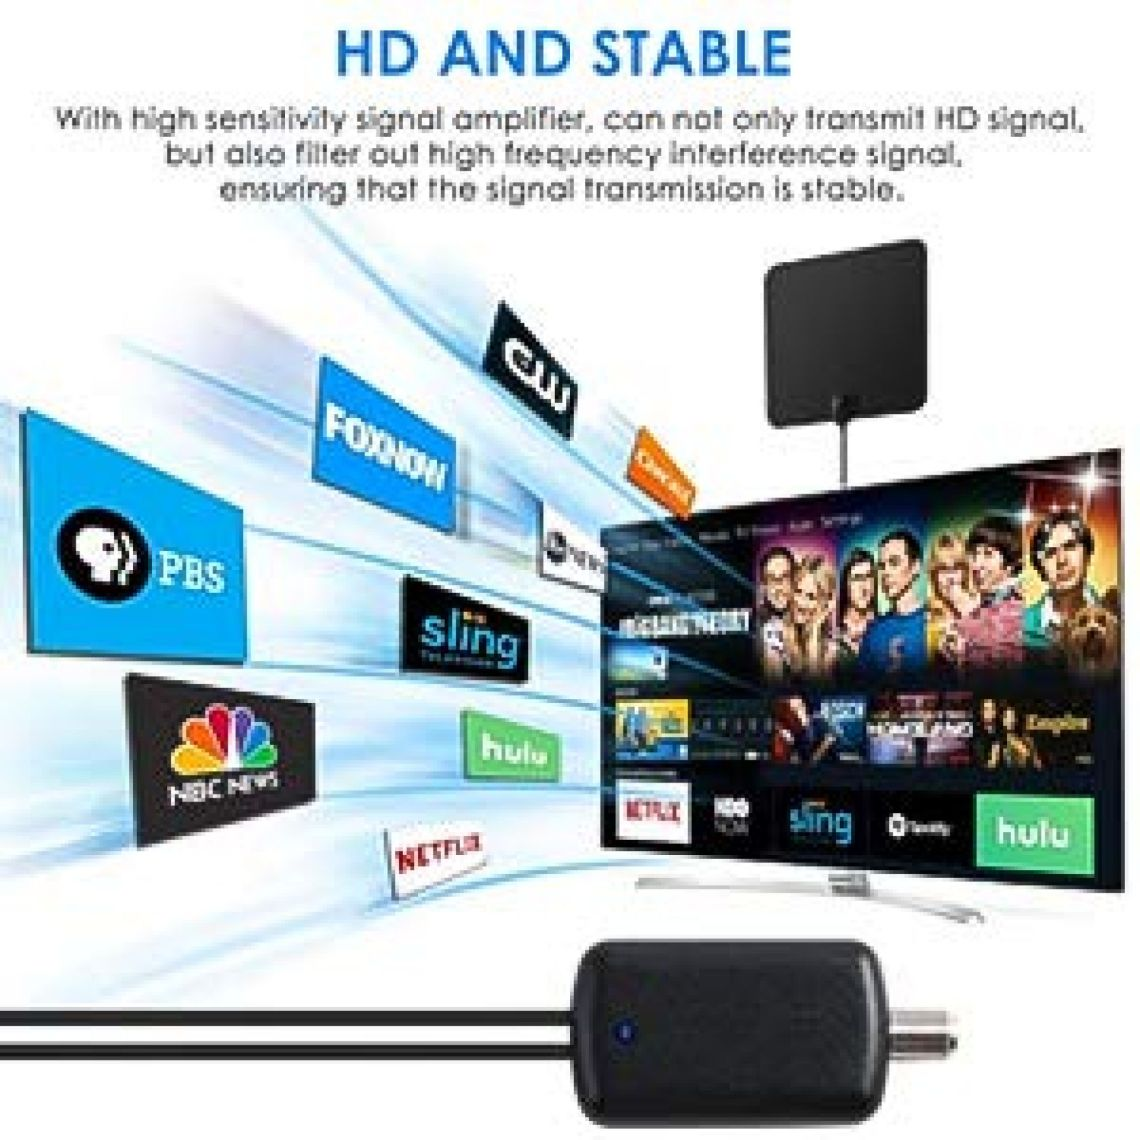 Amazon.com: 2018 Upgraded Version HDTV Antenna, HD Digital Indoor TV Antenna, 60-120 Miles Long Range with Amplifier Signal Booster for 1080P 4K Free TV Channels, Amplified 16ft Coax Cable: Electronics